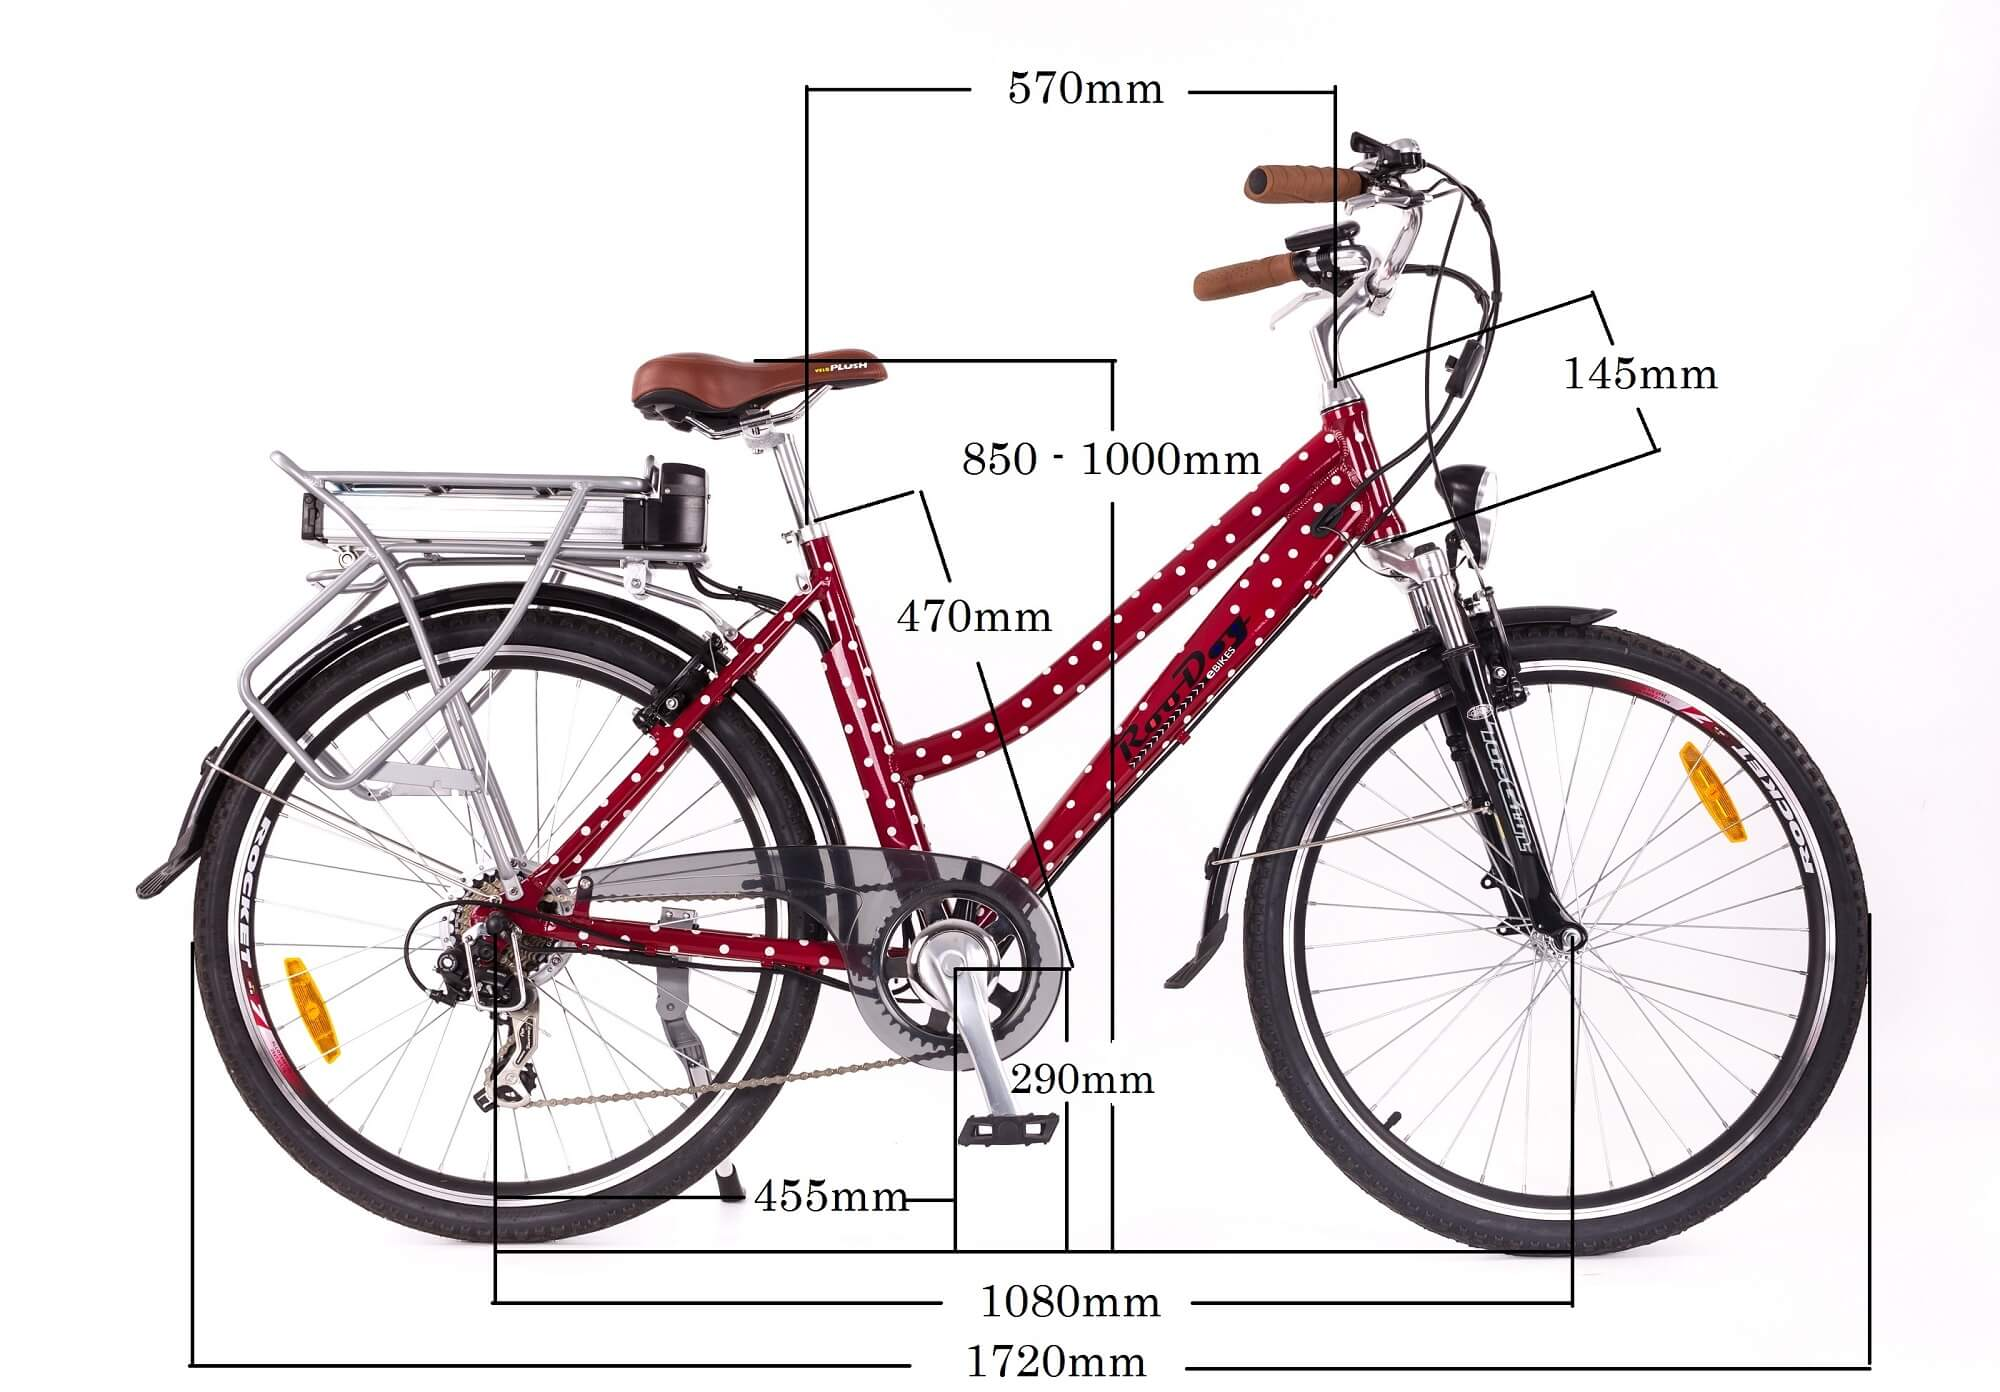 RooDog polka dot electric bike measurements